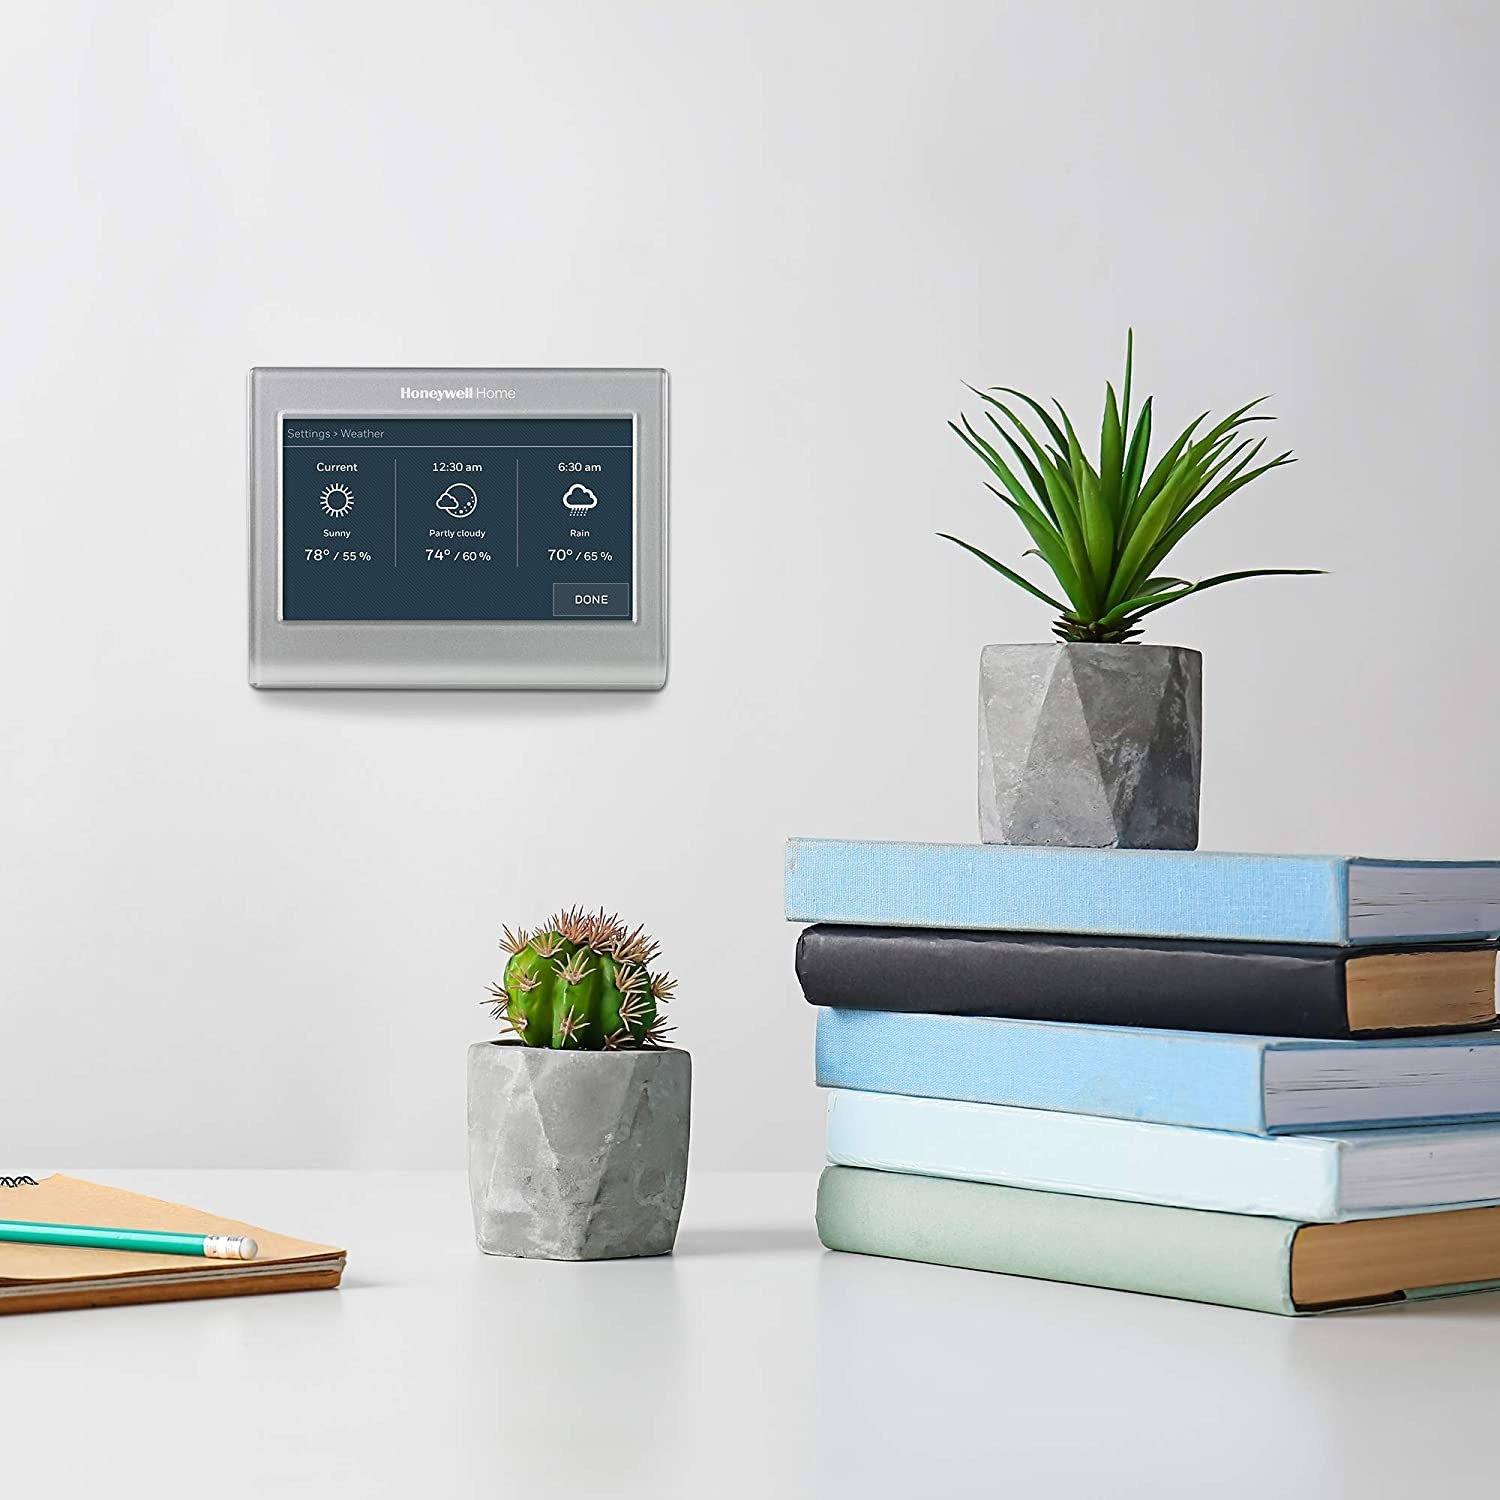 A WiFi thermostat